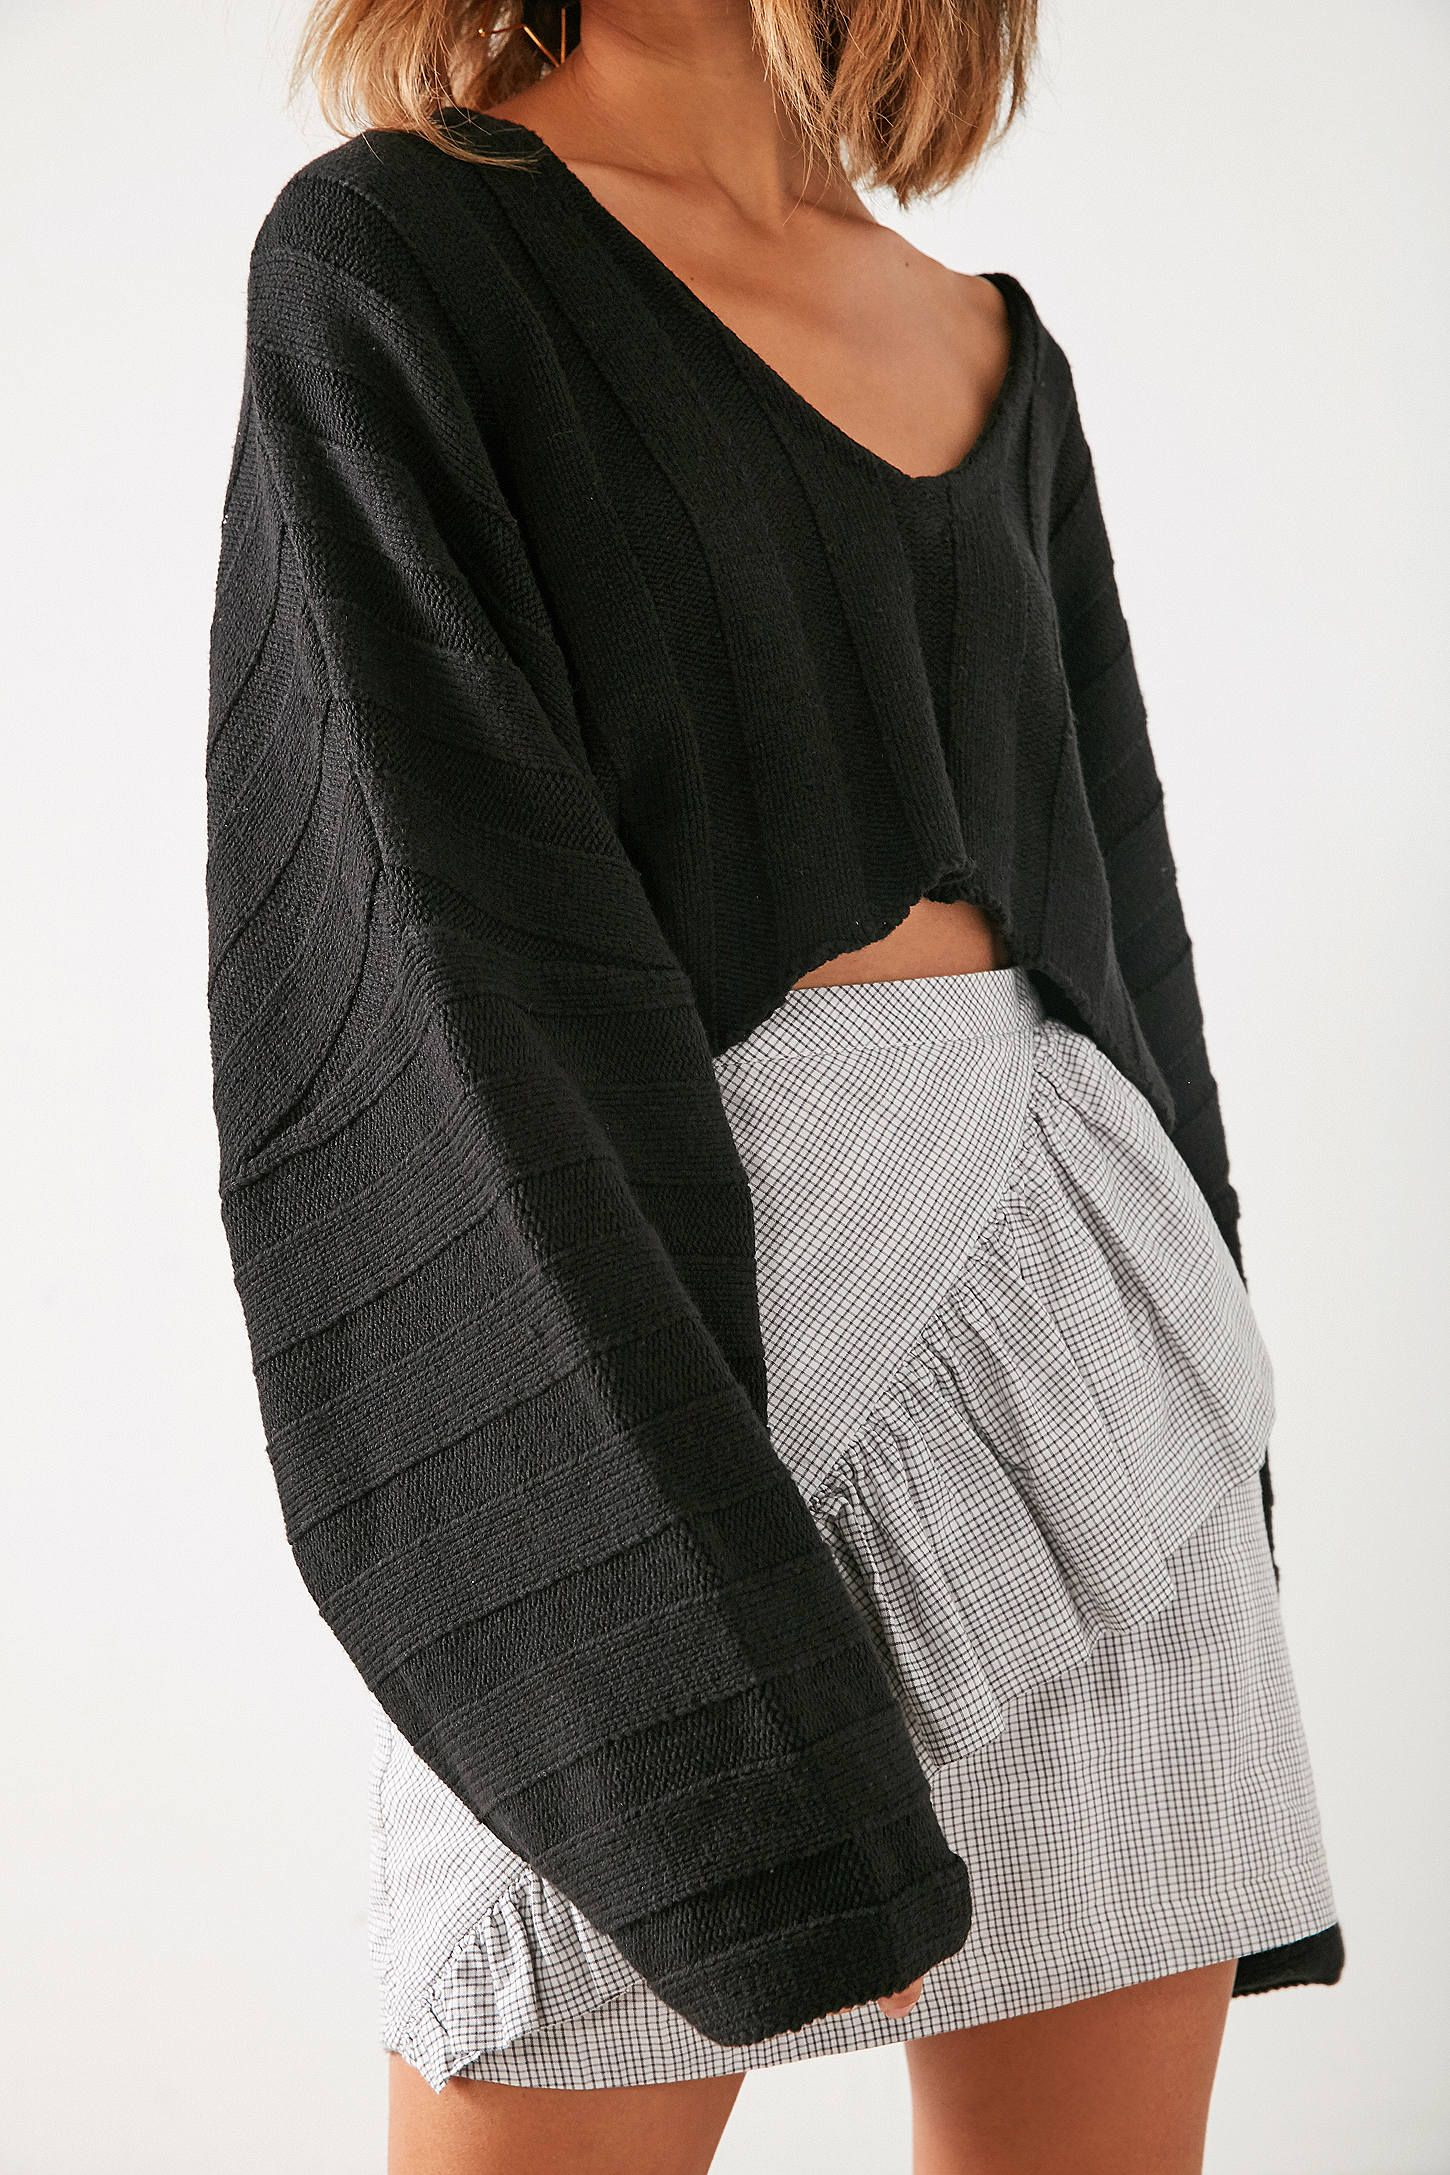 9e68a28d1c0fd Shop Silence + Noise Slouchy Ribbed High Low Sweater at Urban Outfitters  today. We carry all the latest styles